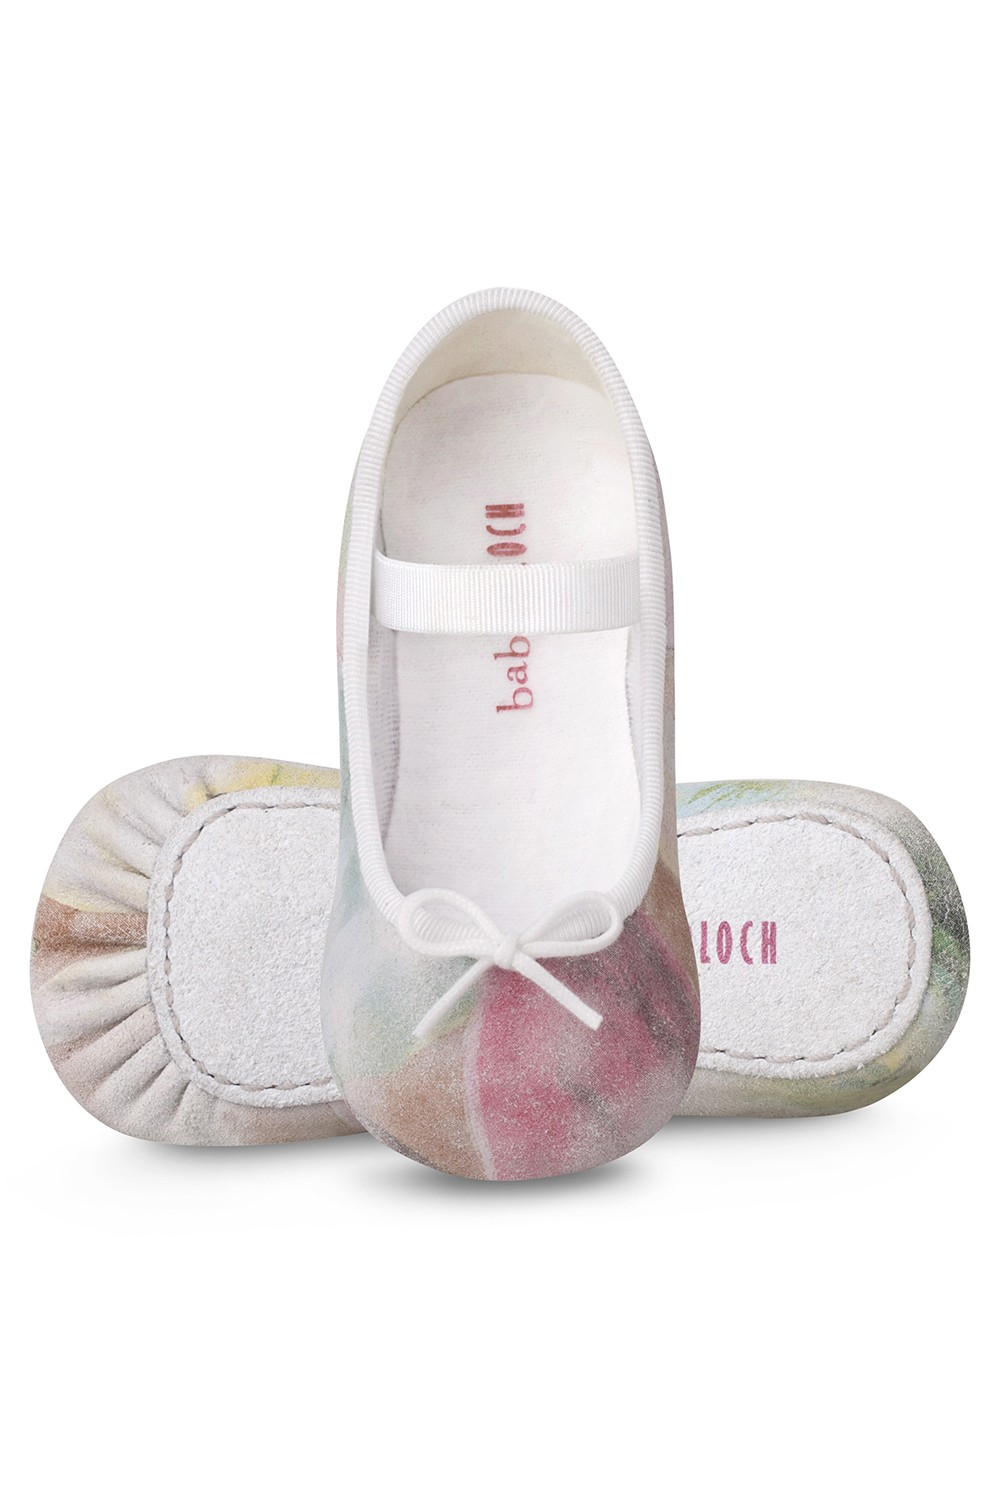 Baby Lorraine Ballet Flat Shoes Babies Fashion Shoes